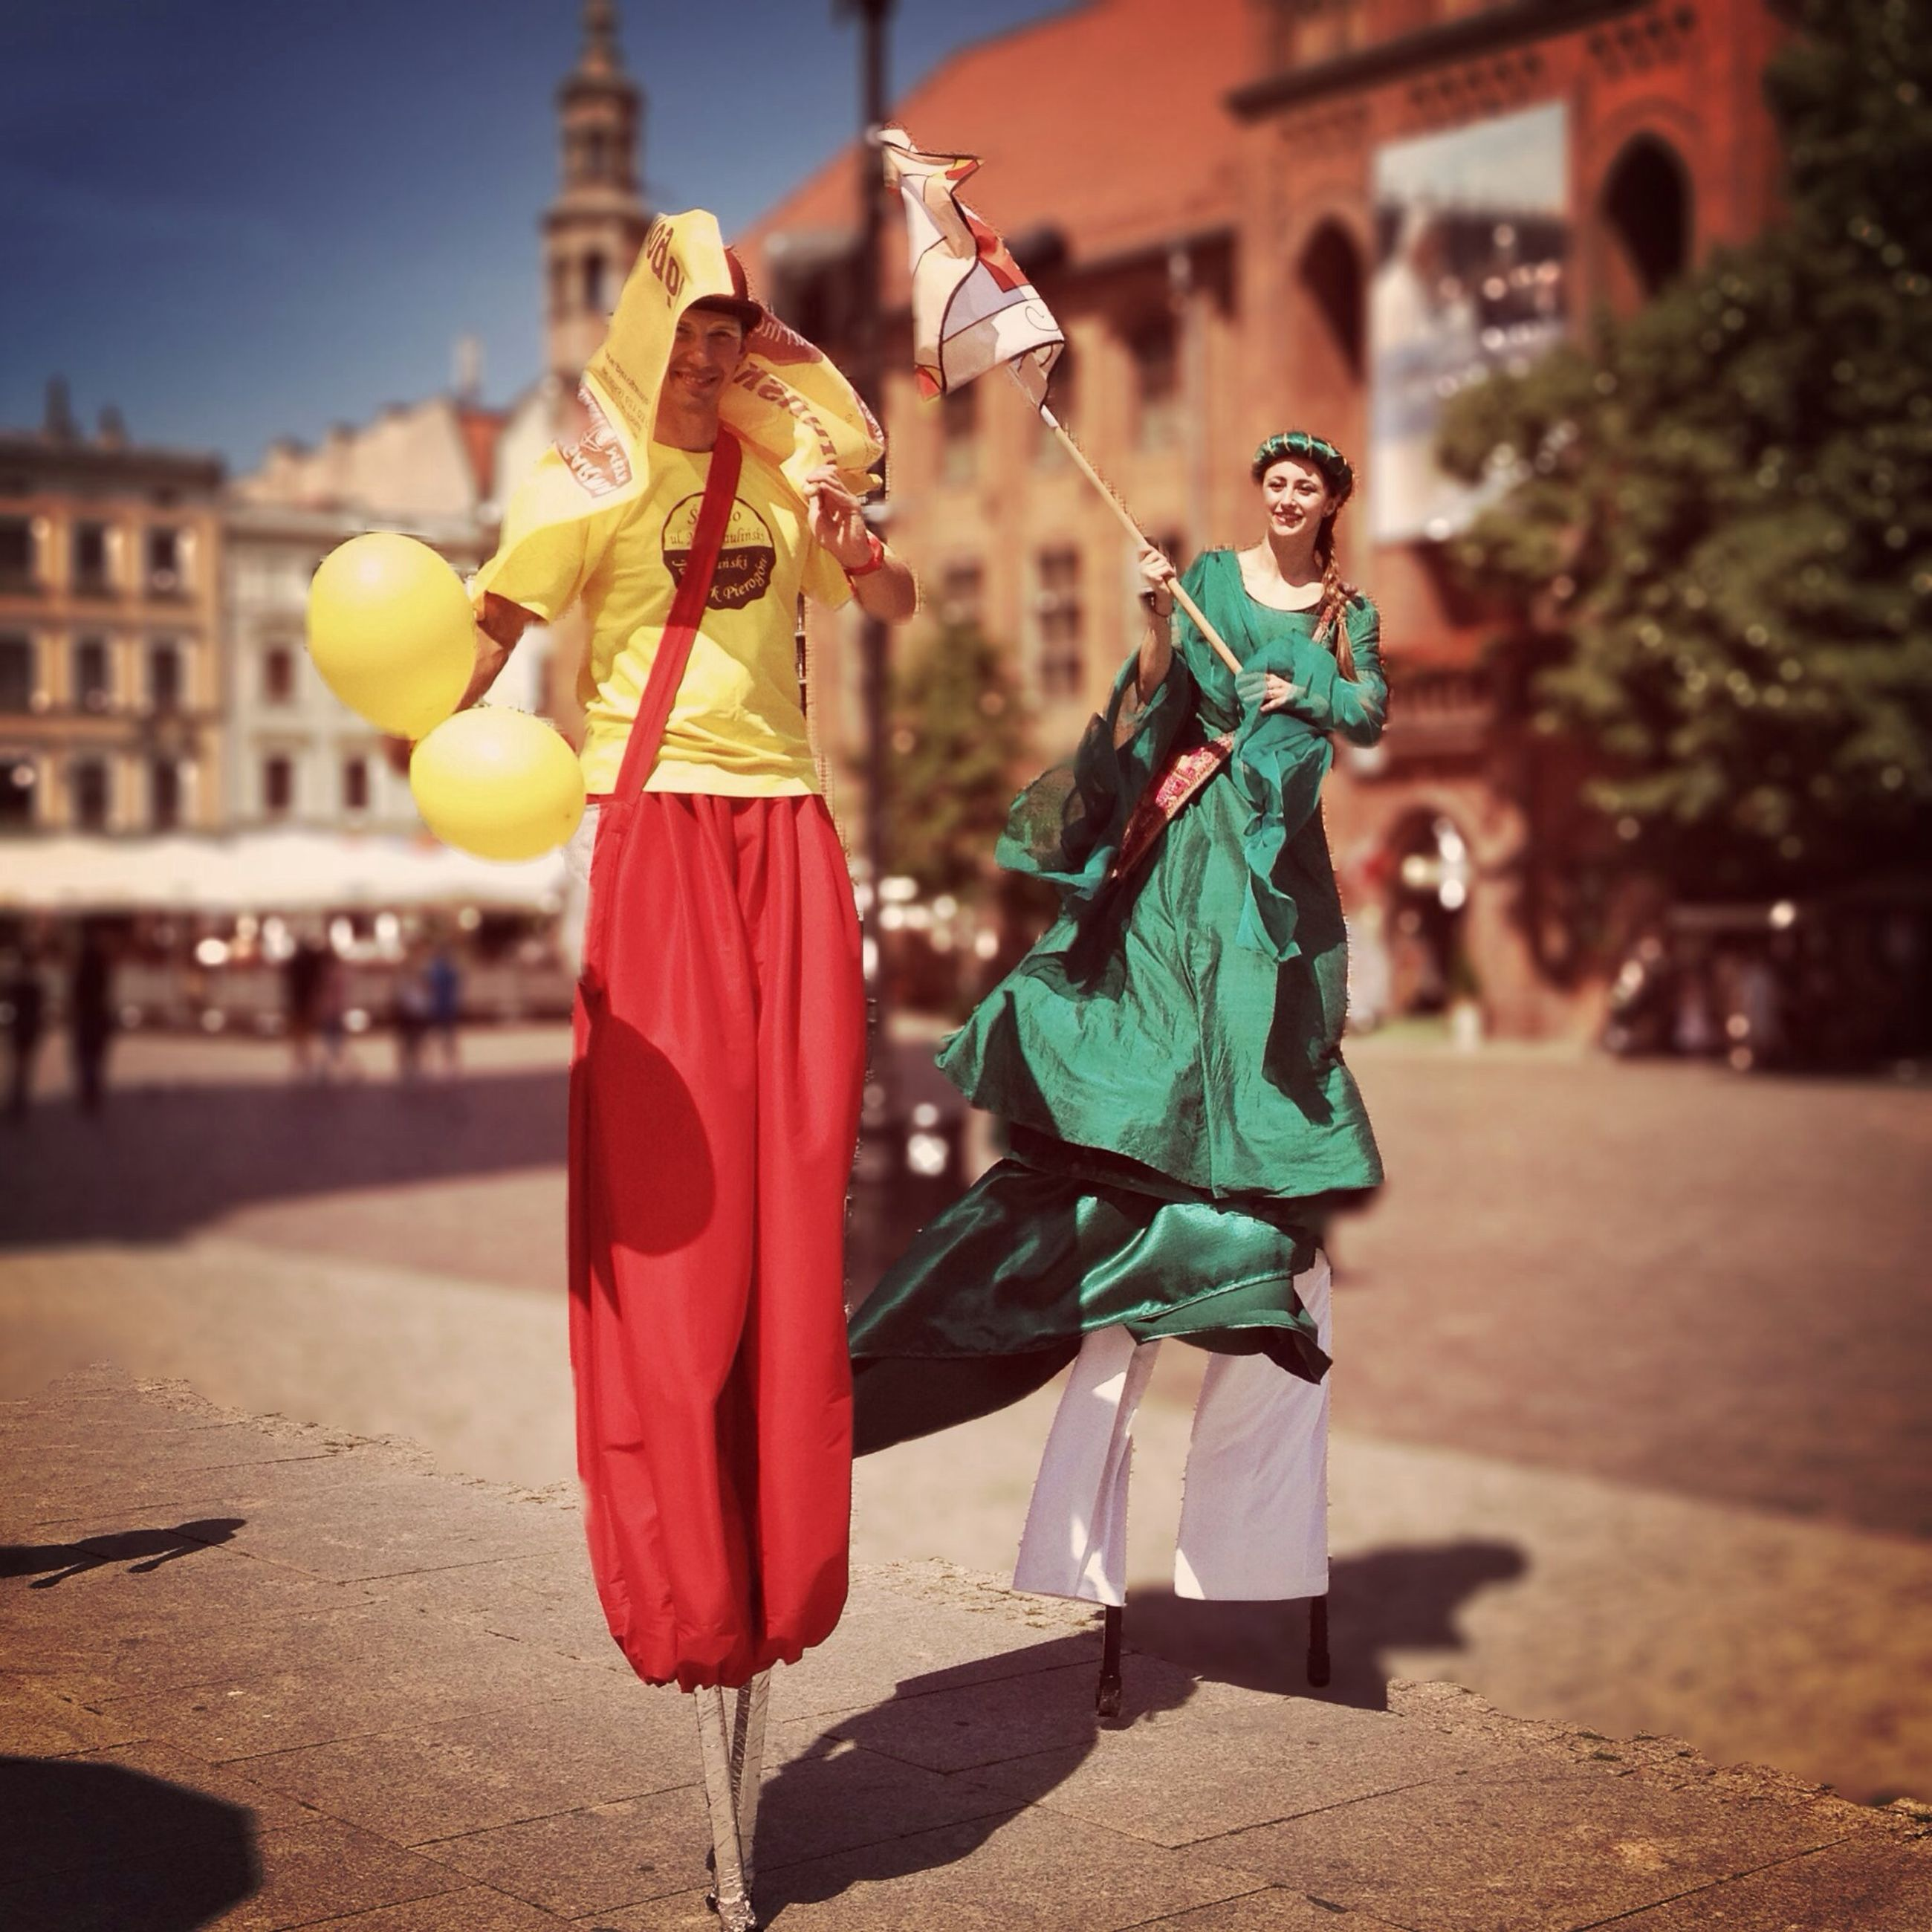 focus on foreground, lifestyles, full length, building exterior, leisure activity, built structure, architecture, street, casual clothing, cultures, incidental people, holding, tradition, traditional clothing, day, sunlight, celebration, outdoors